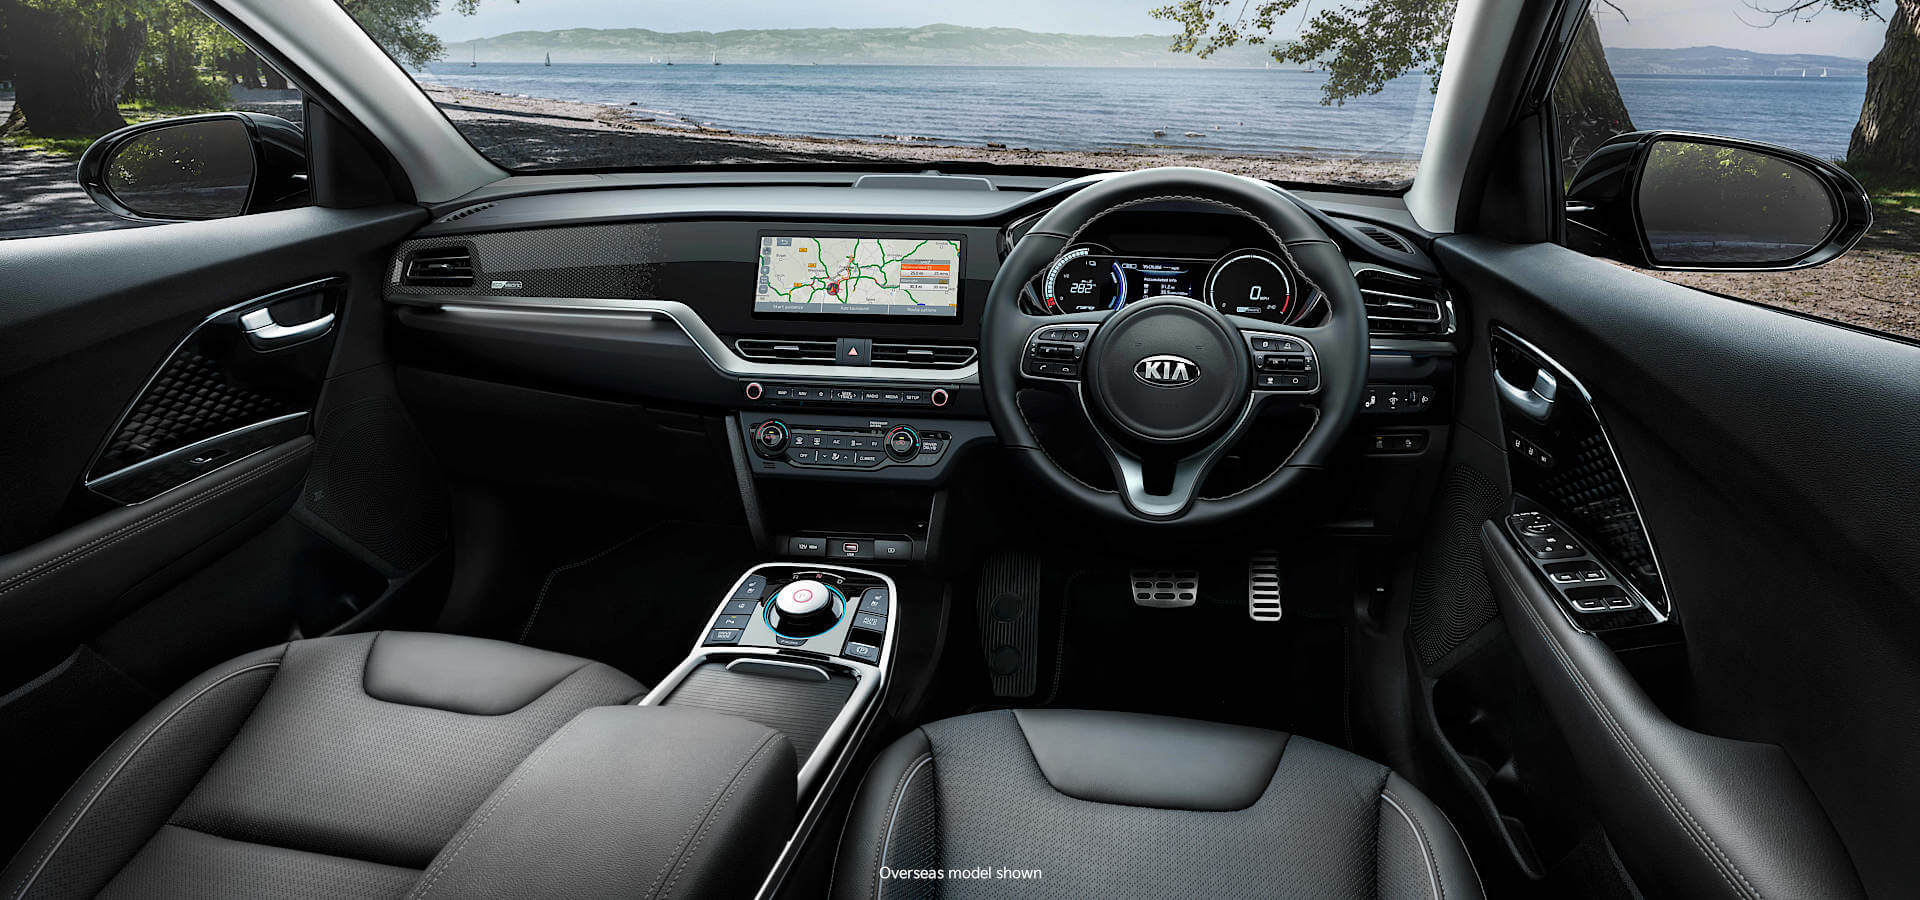 Smart. Spacious. Sophisticated. Image